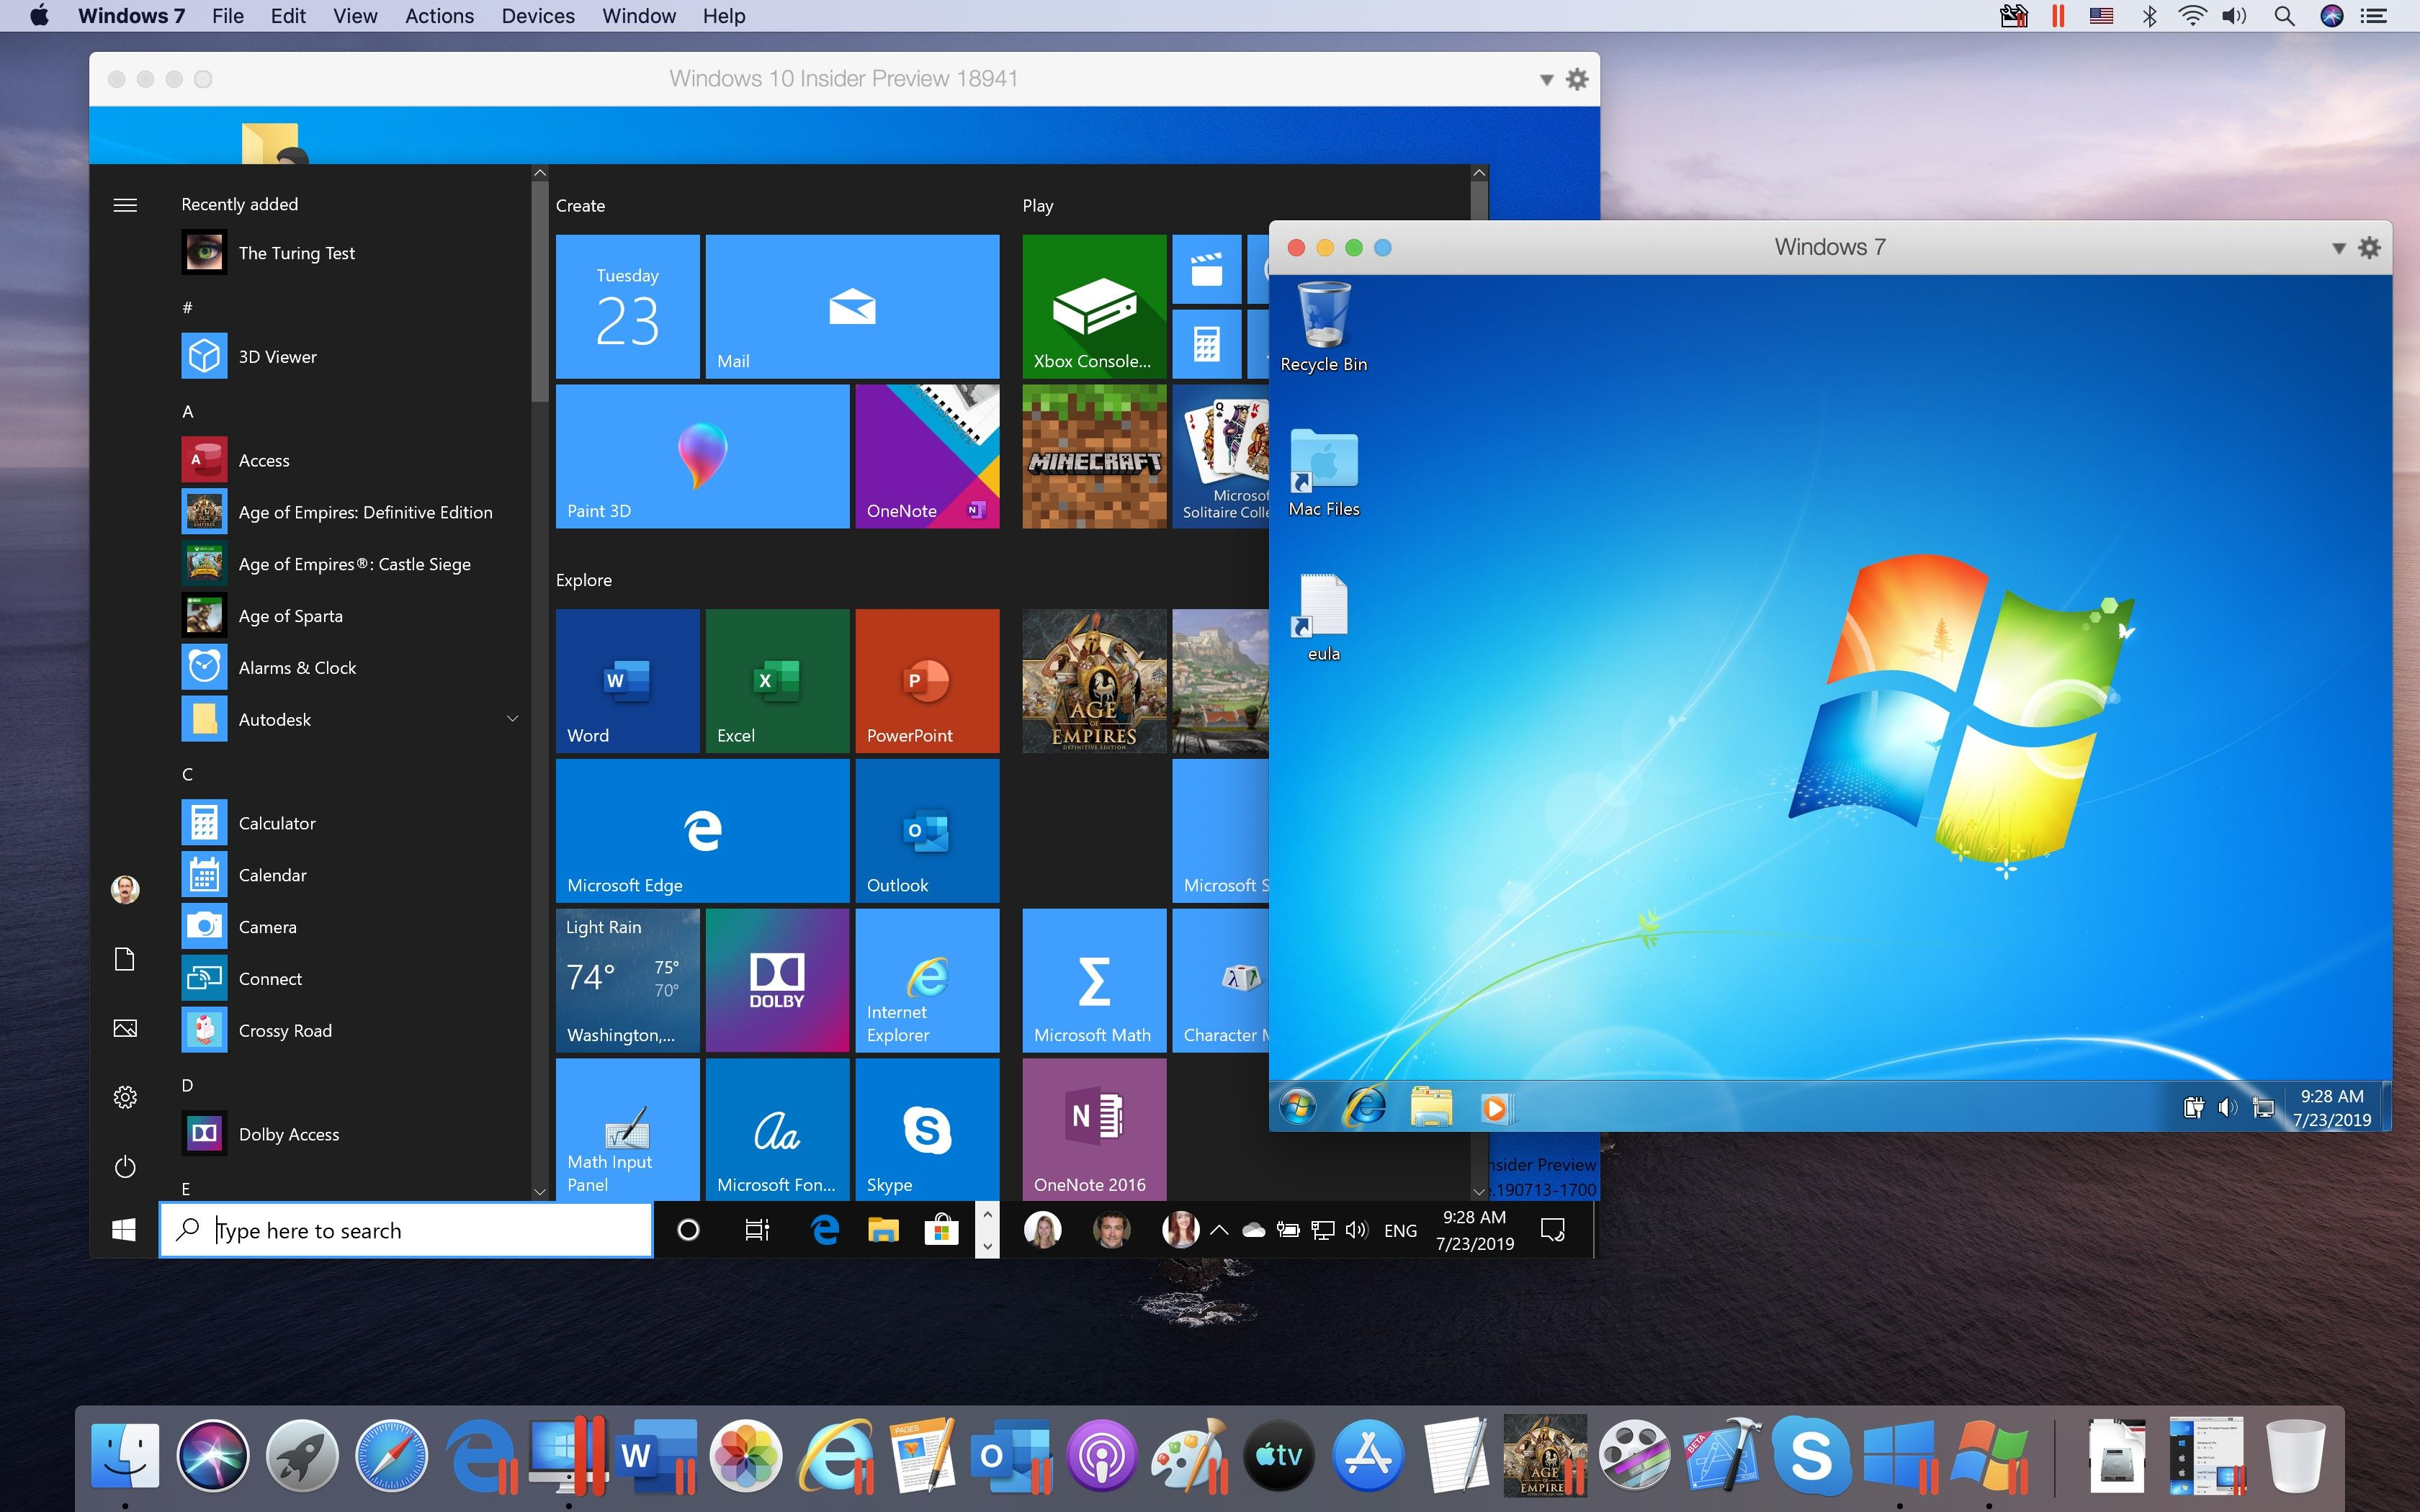 Parallels Desktop 15 for Mac Fully Supports macOS 10